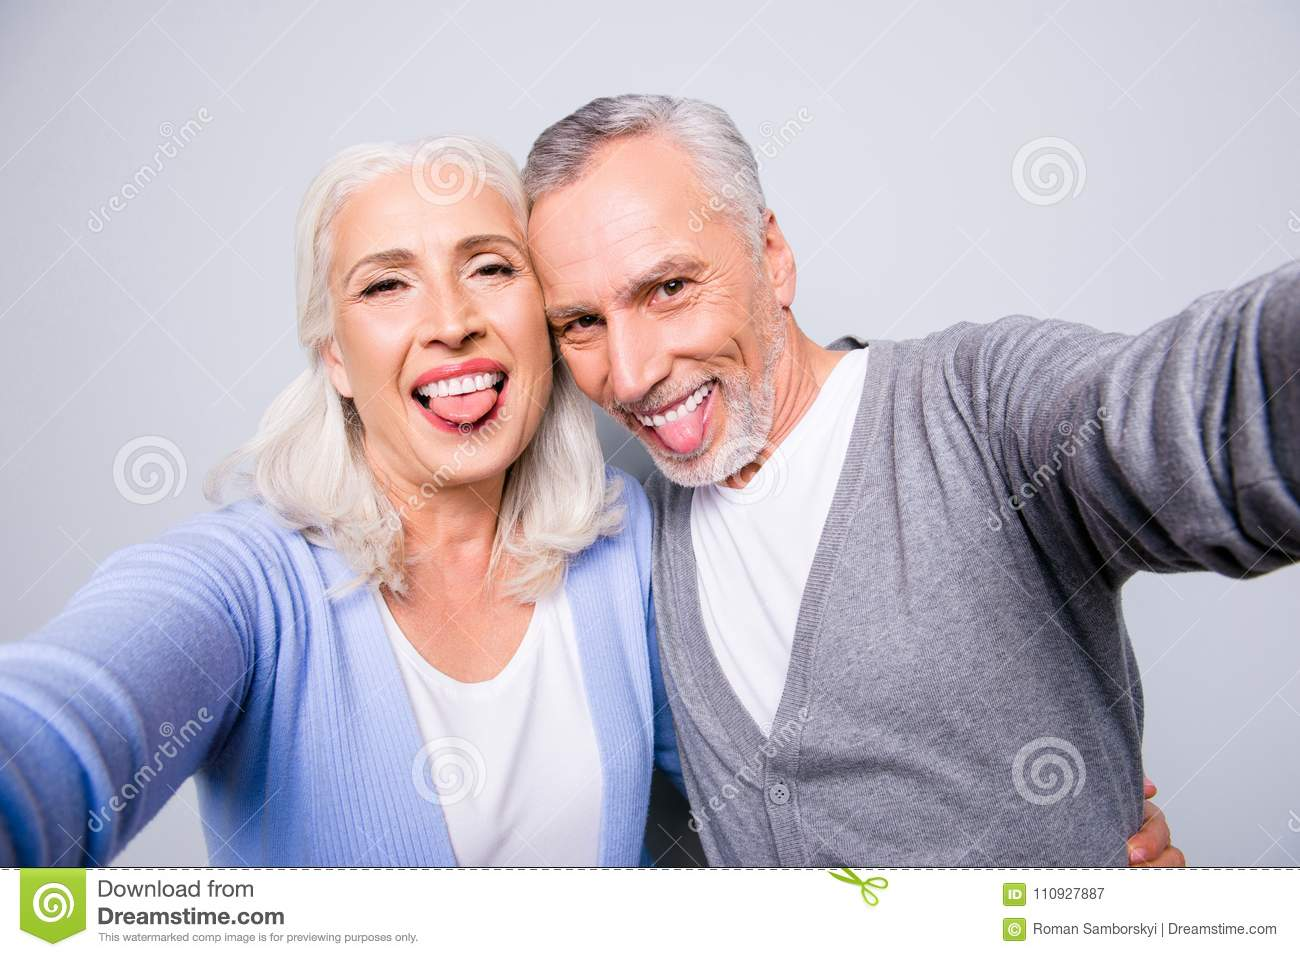 Crazy funky funny elderly couple are taking selfie using smartphone and showing tongues, isolated on grey background